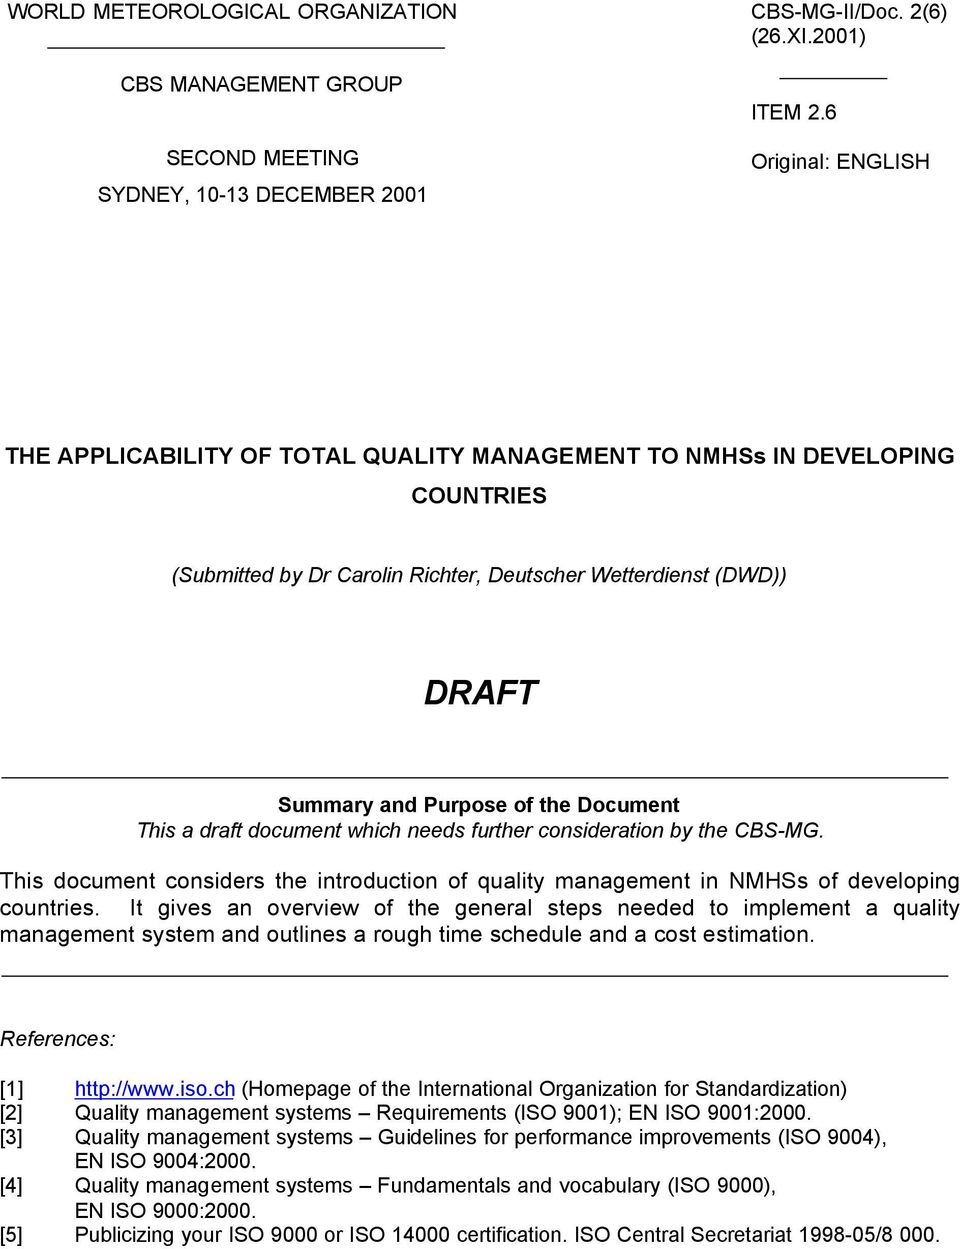 Document This a draft document which needs further consideration by the CBS-MG. This document considers the introduction of quality management in NMHSs of developing countries.